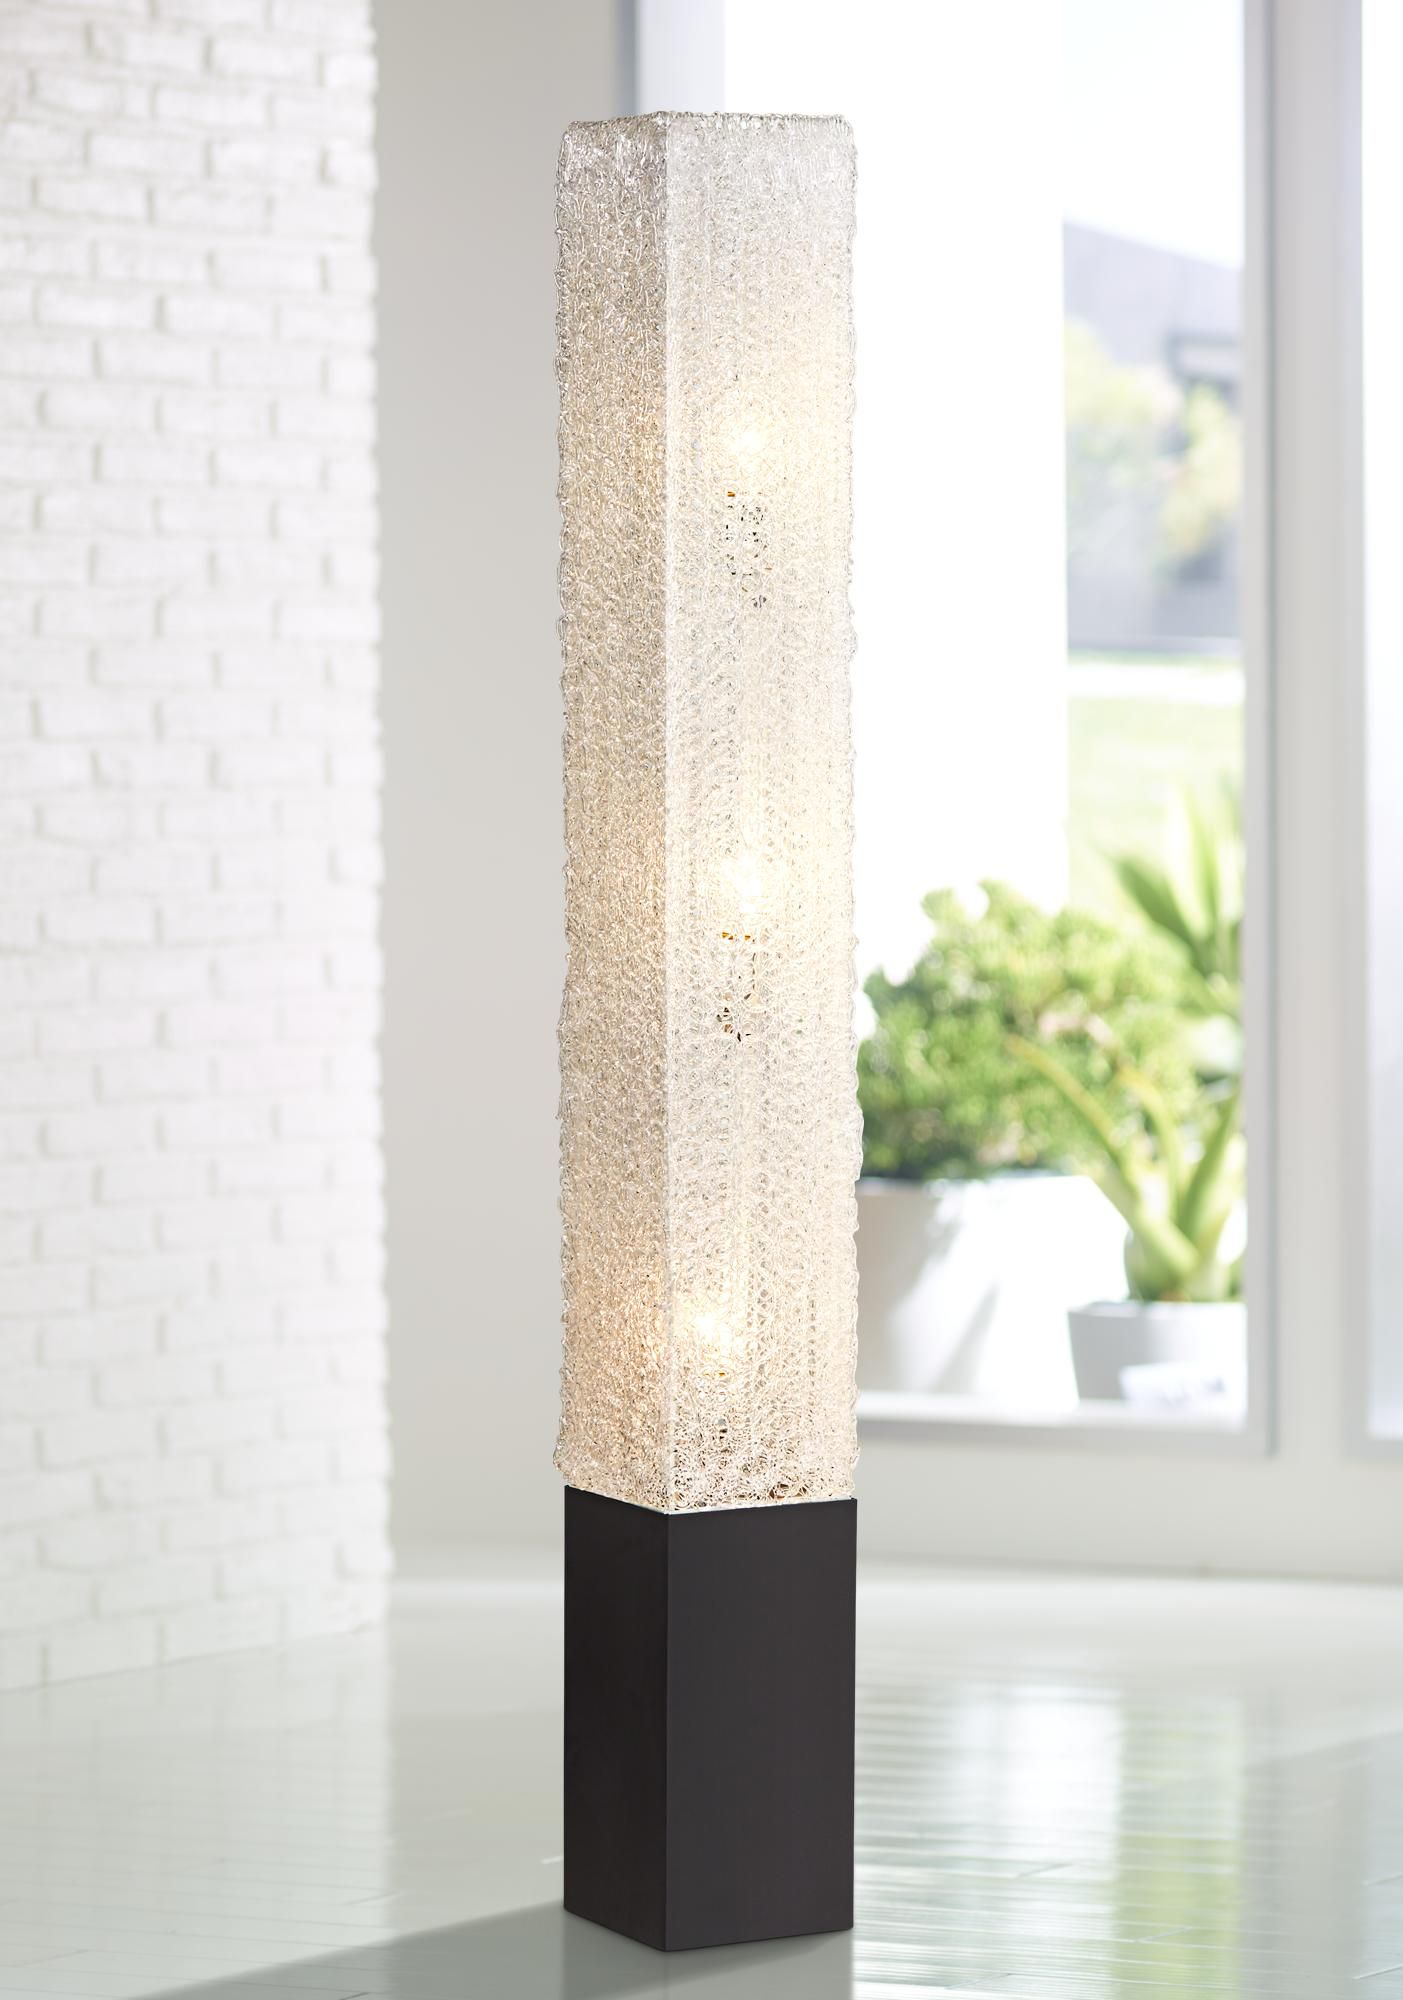 Diax Textured Clear Acrylic Rectangular Floor Lamp 21729